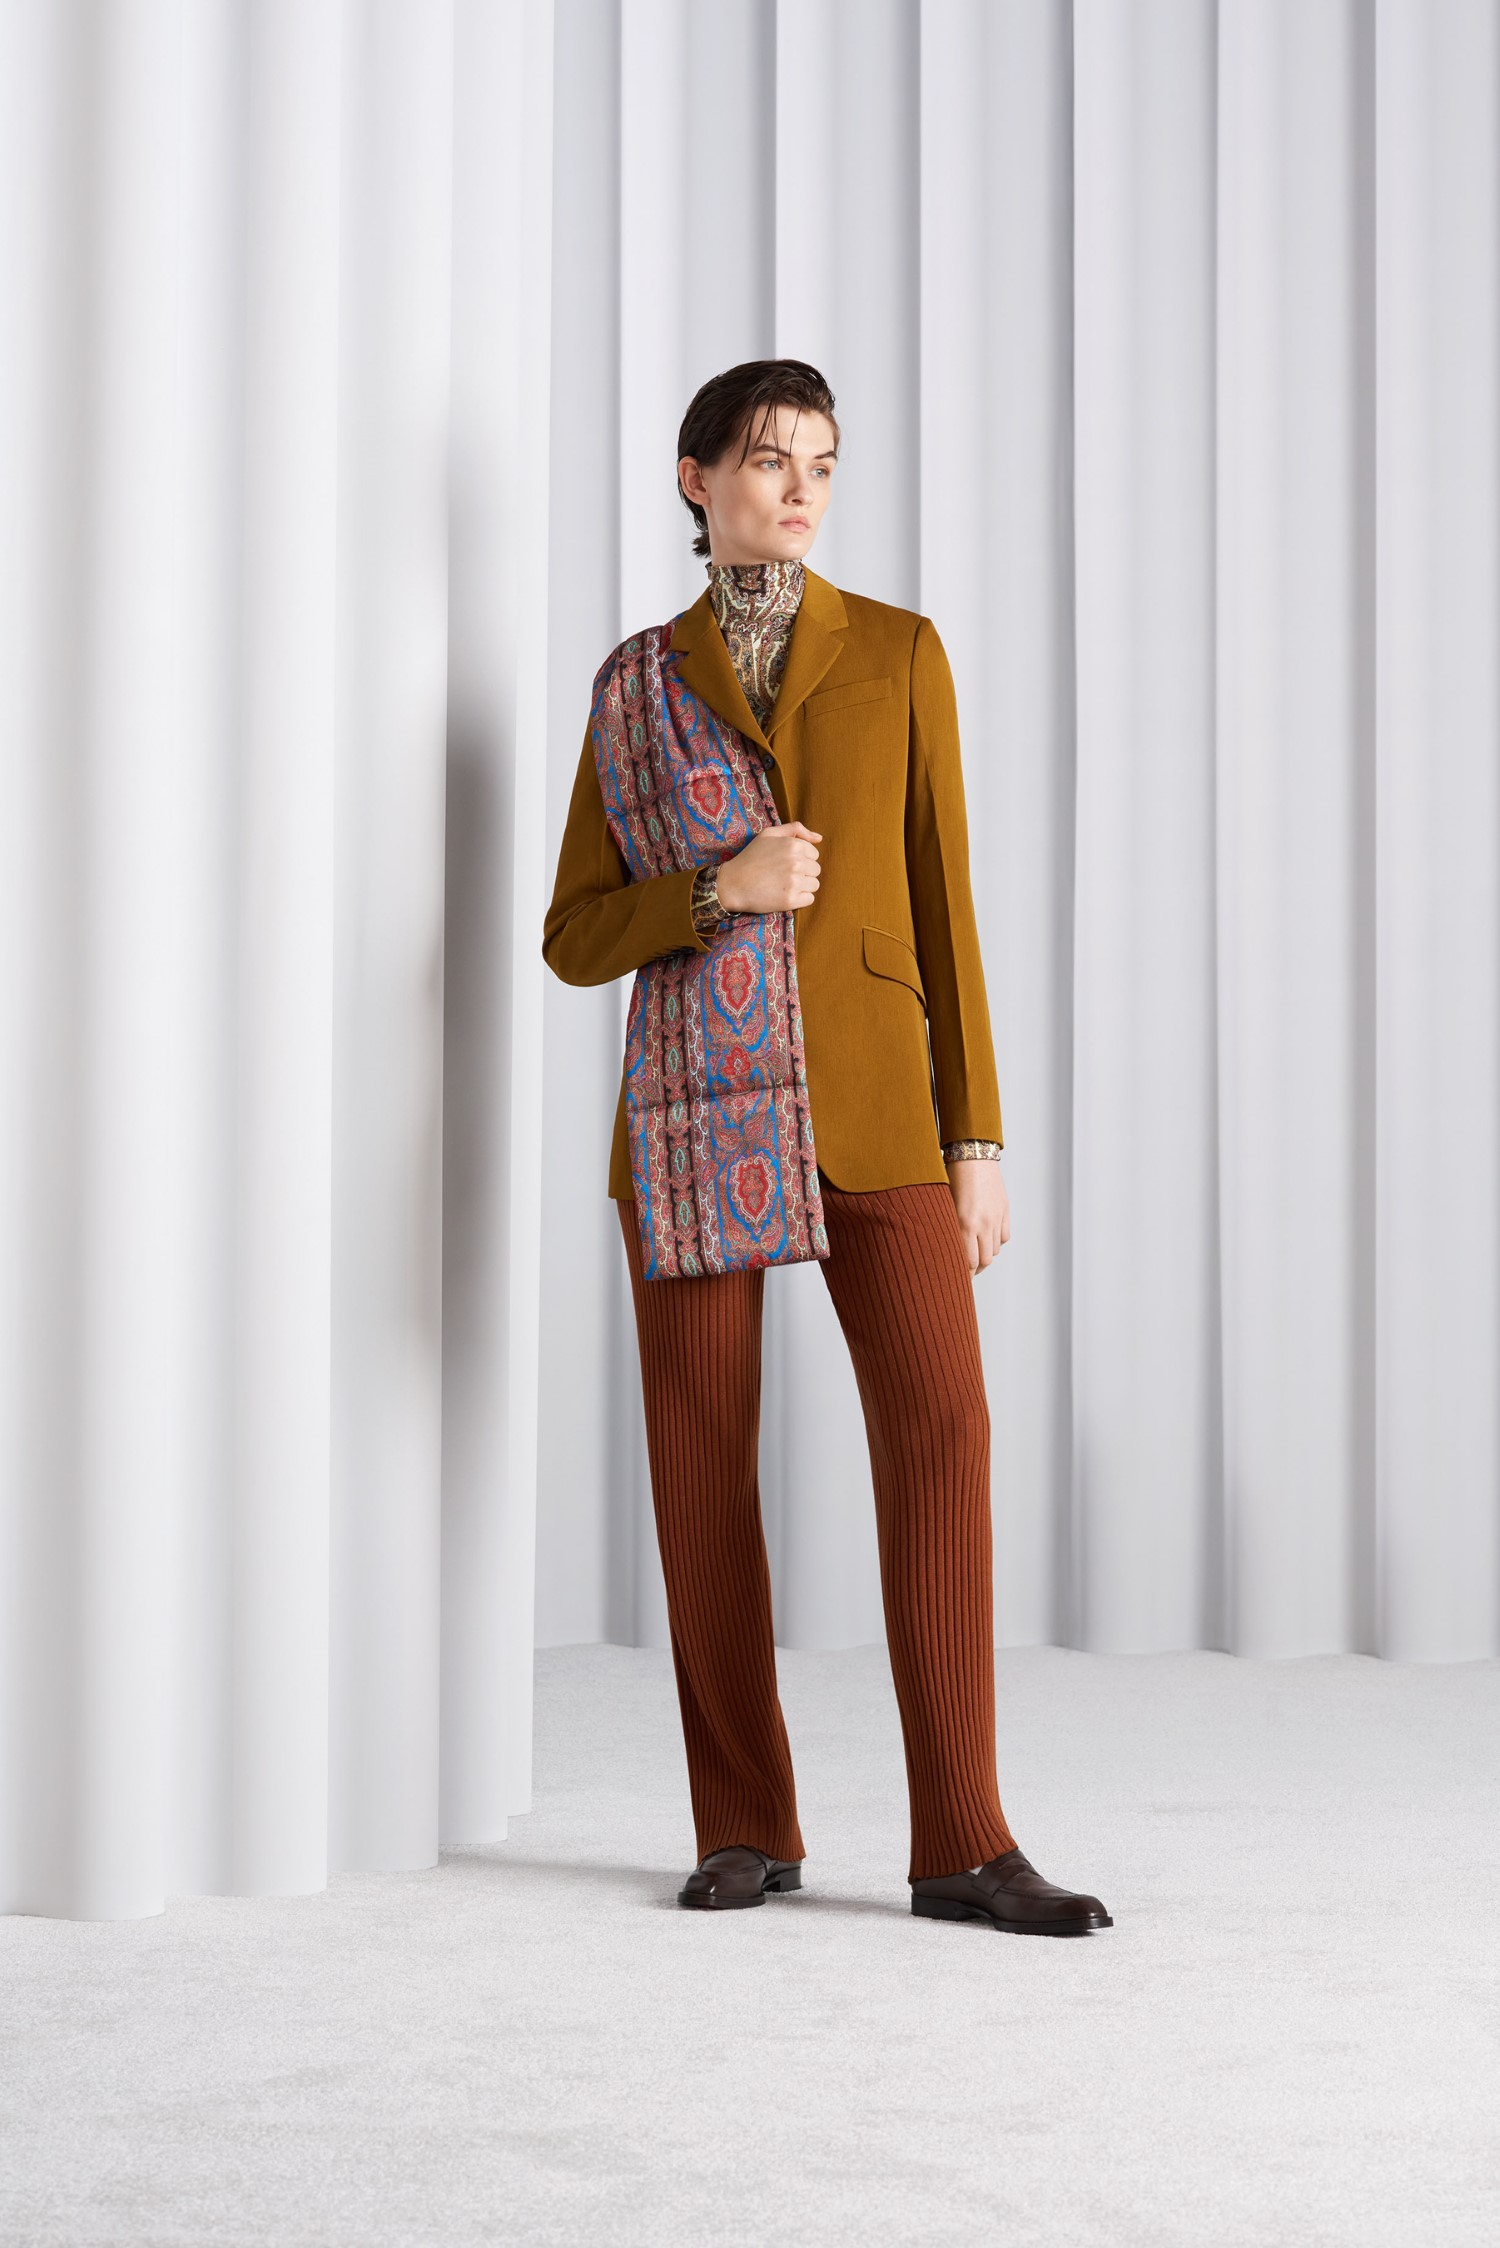 Paul Smith Fall Winter 2021 - Paris Fashion Week